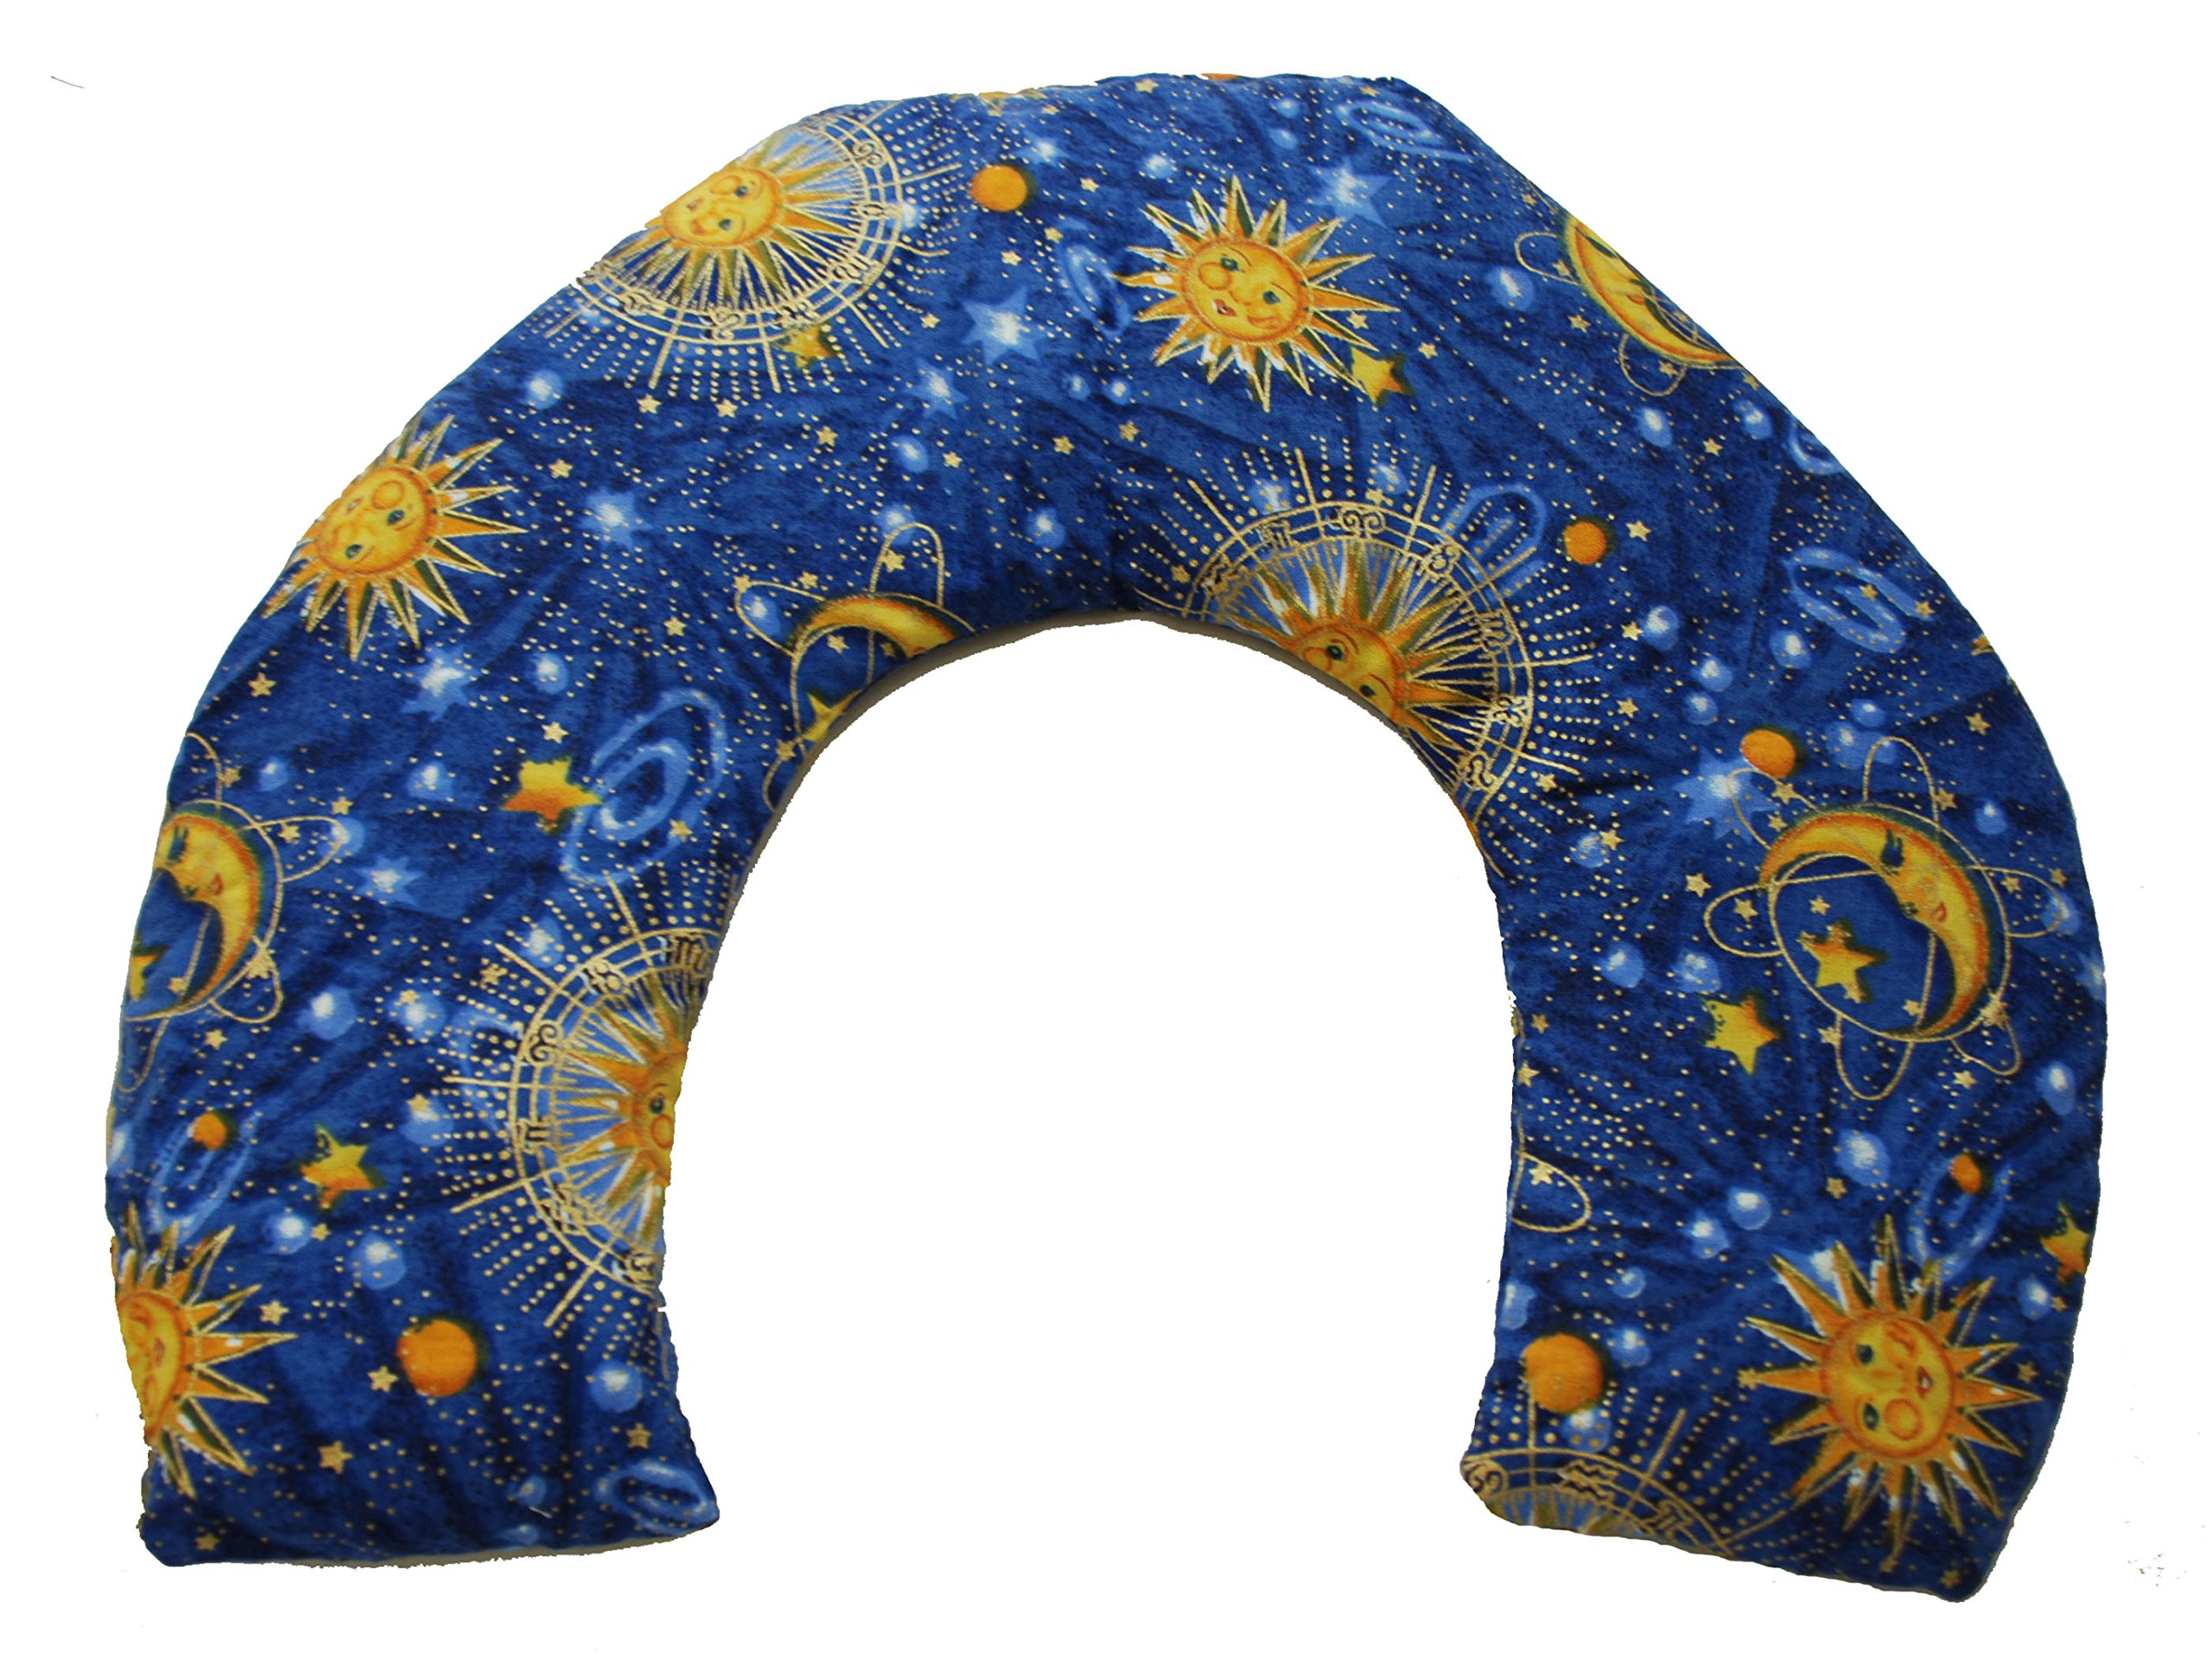 Nature's Approach Aromatherapy Neck Wrap Herbal Pack, Celestial Indigo